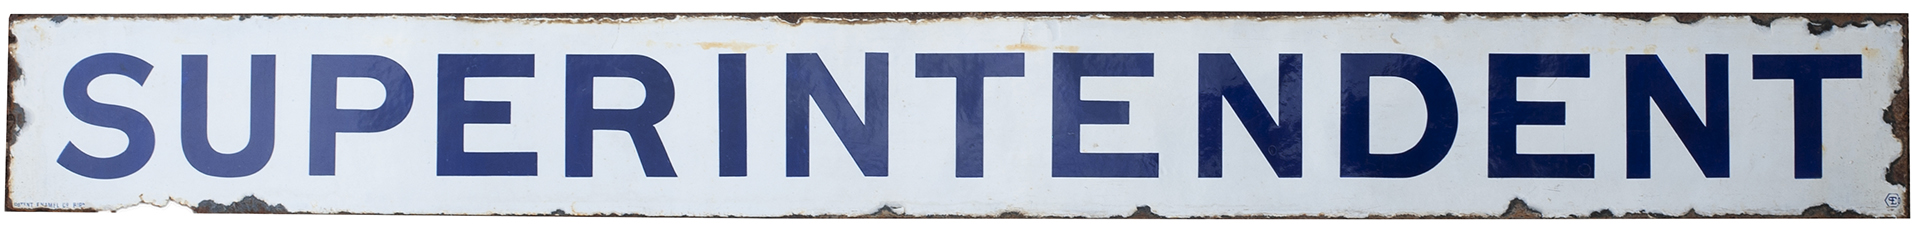 Great Western Railway pre grouping enamel station platform sign SUPERINTENDENT. In very good